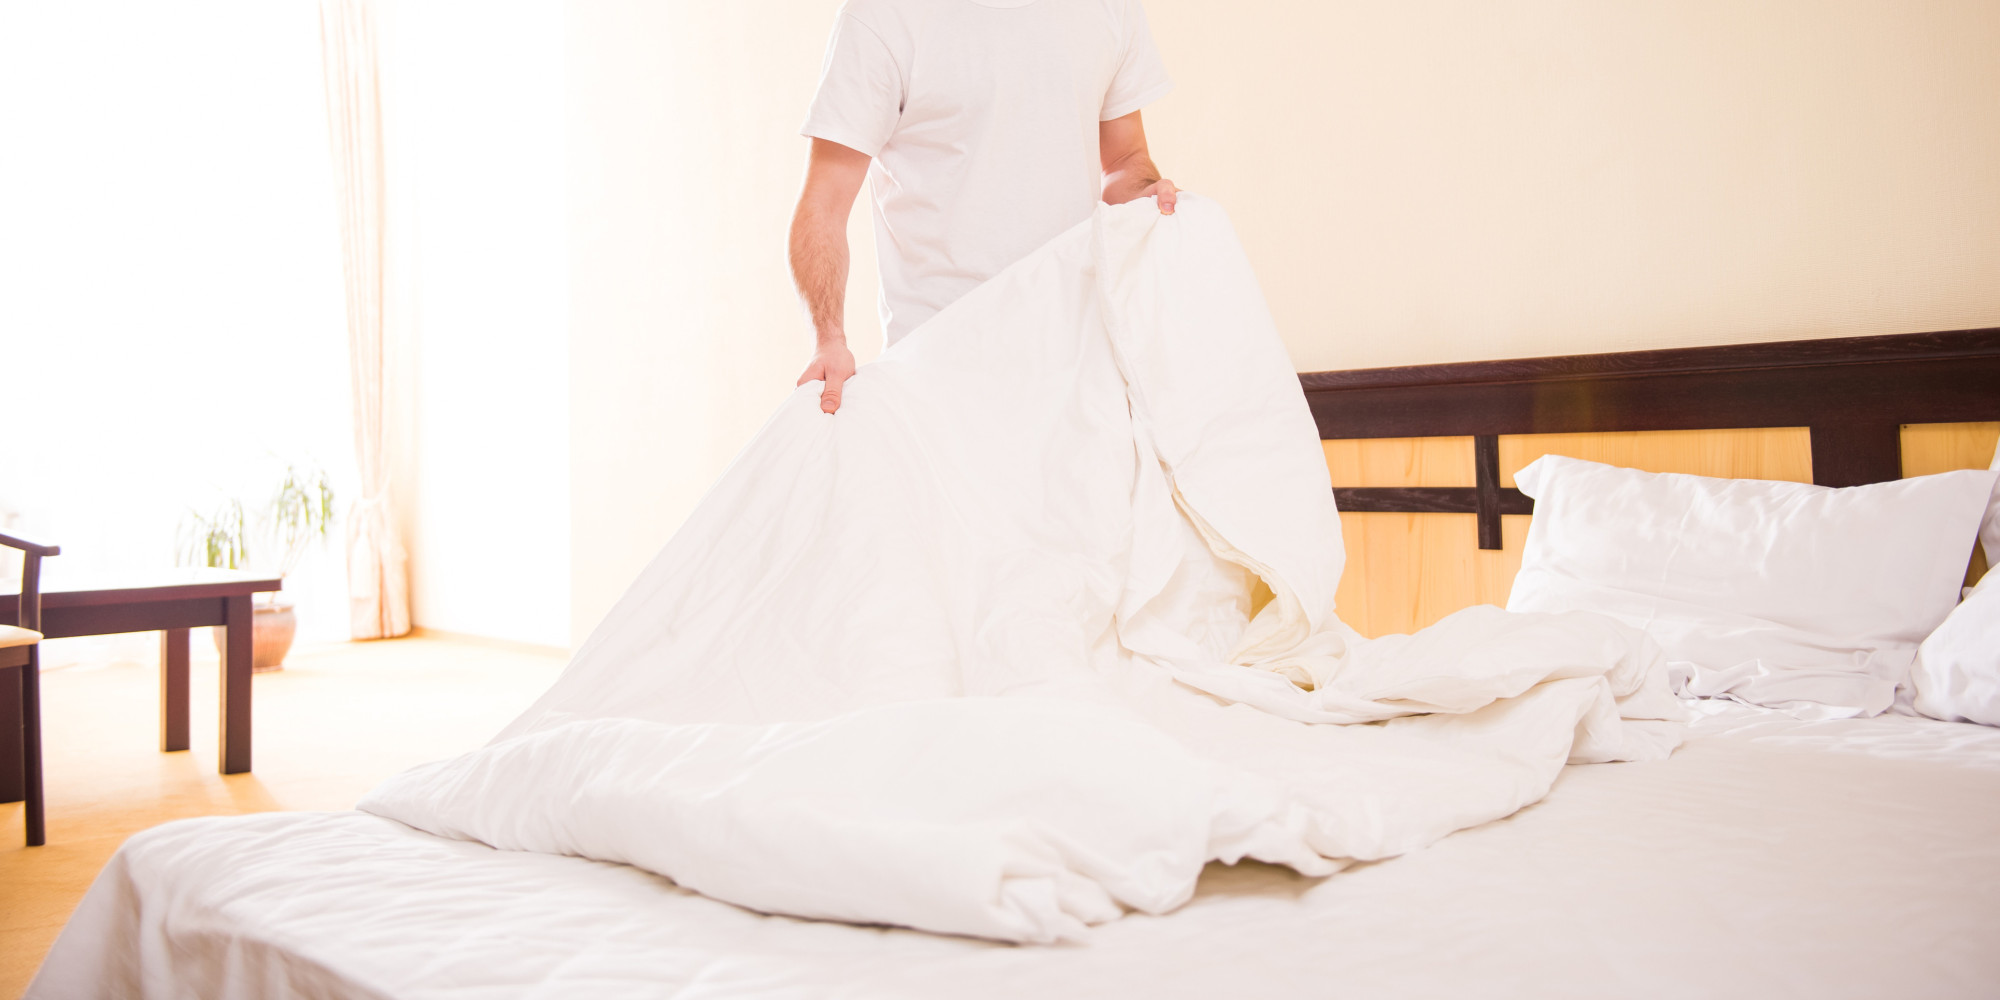 Bedden Opmaken Make Your Bed Change Your Life Huffpost